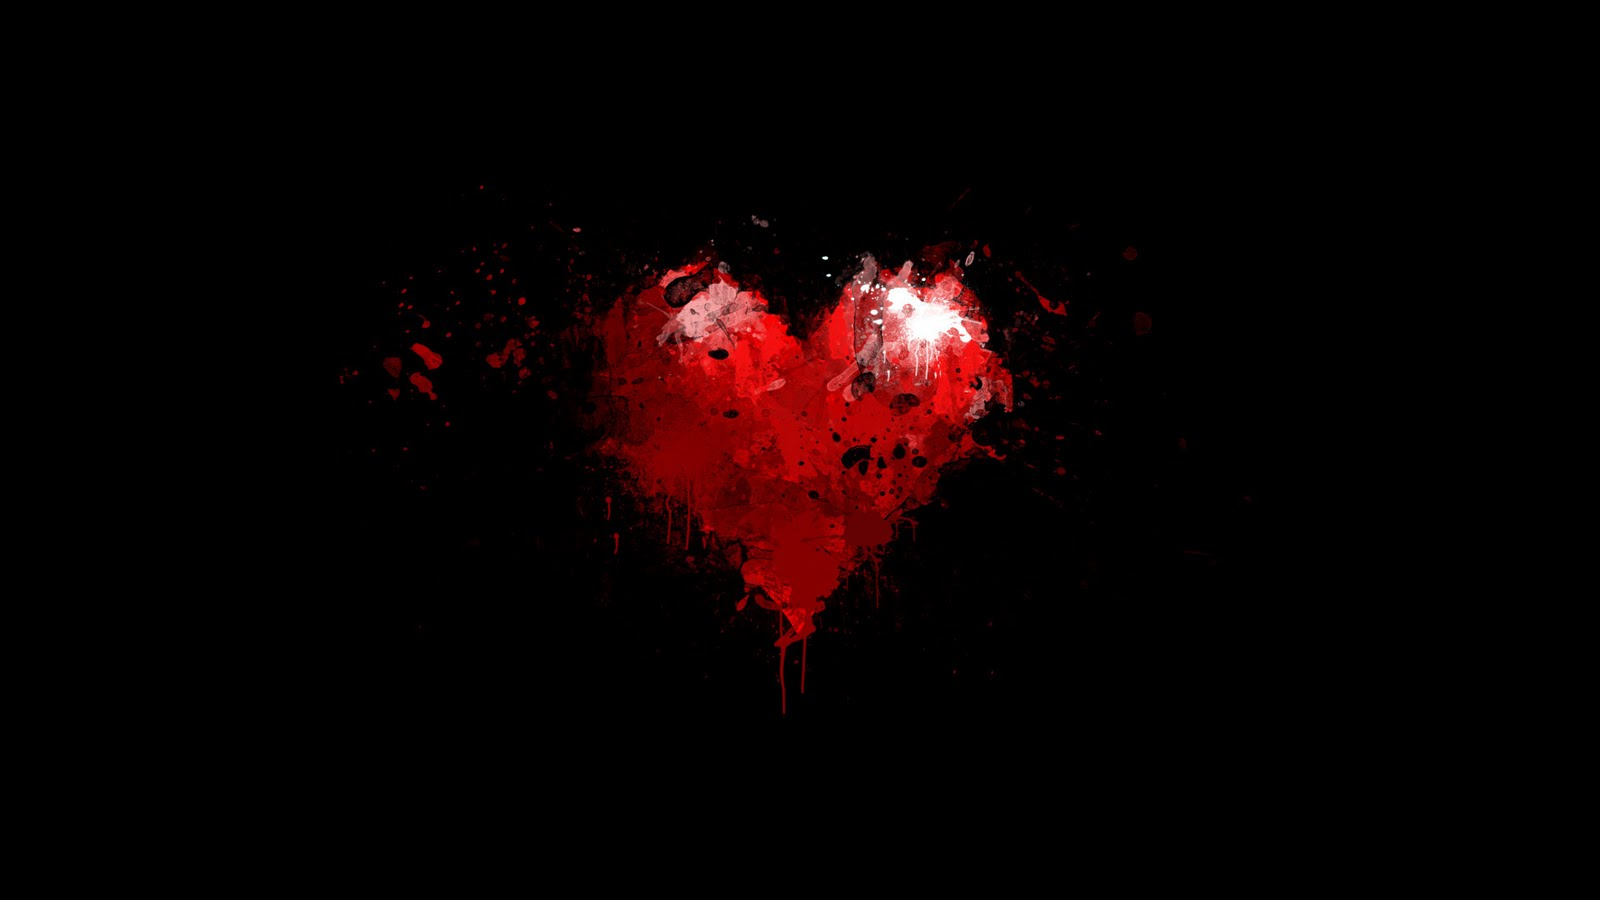 Love End Wallpaper Hd : Minimalism Black Red Heart Paint Drop HD Love Wallpaper Love Wallpapers Romantic Wallpapers ...